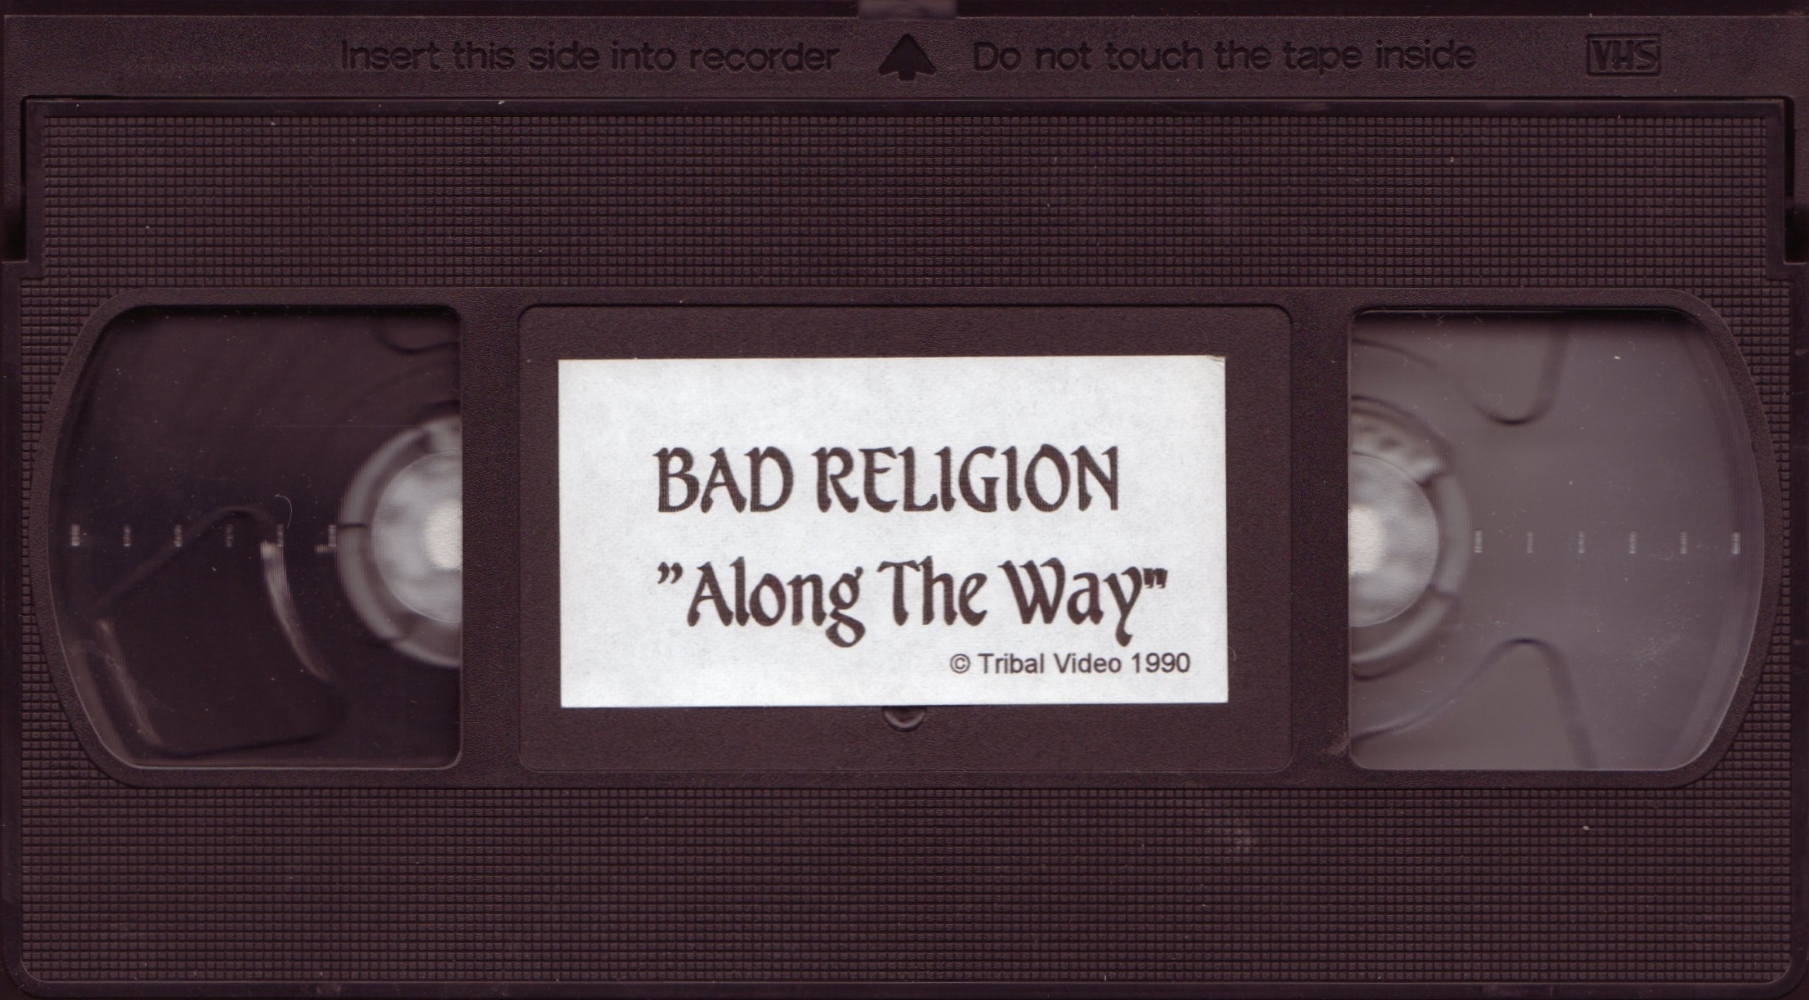 Bad Religion - Along the way (1990)